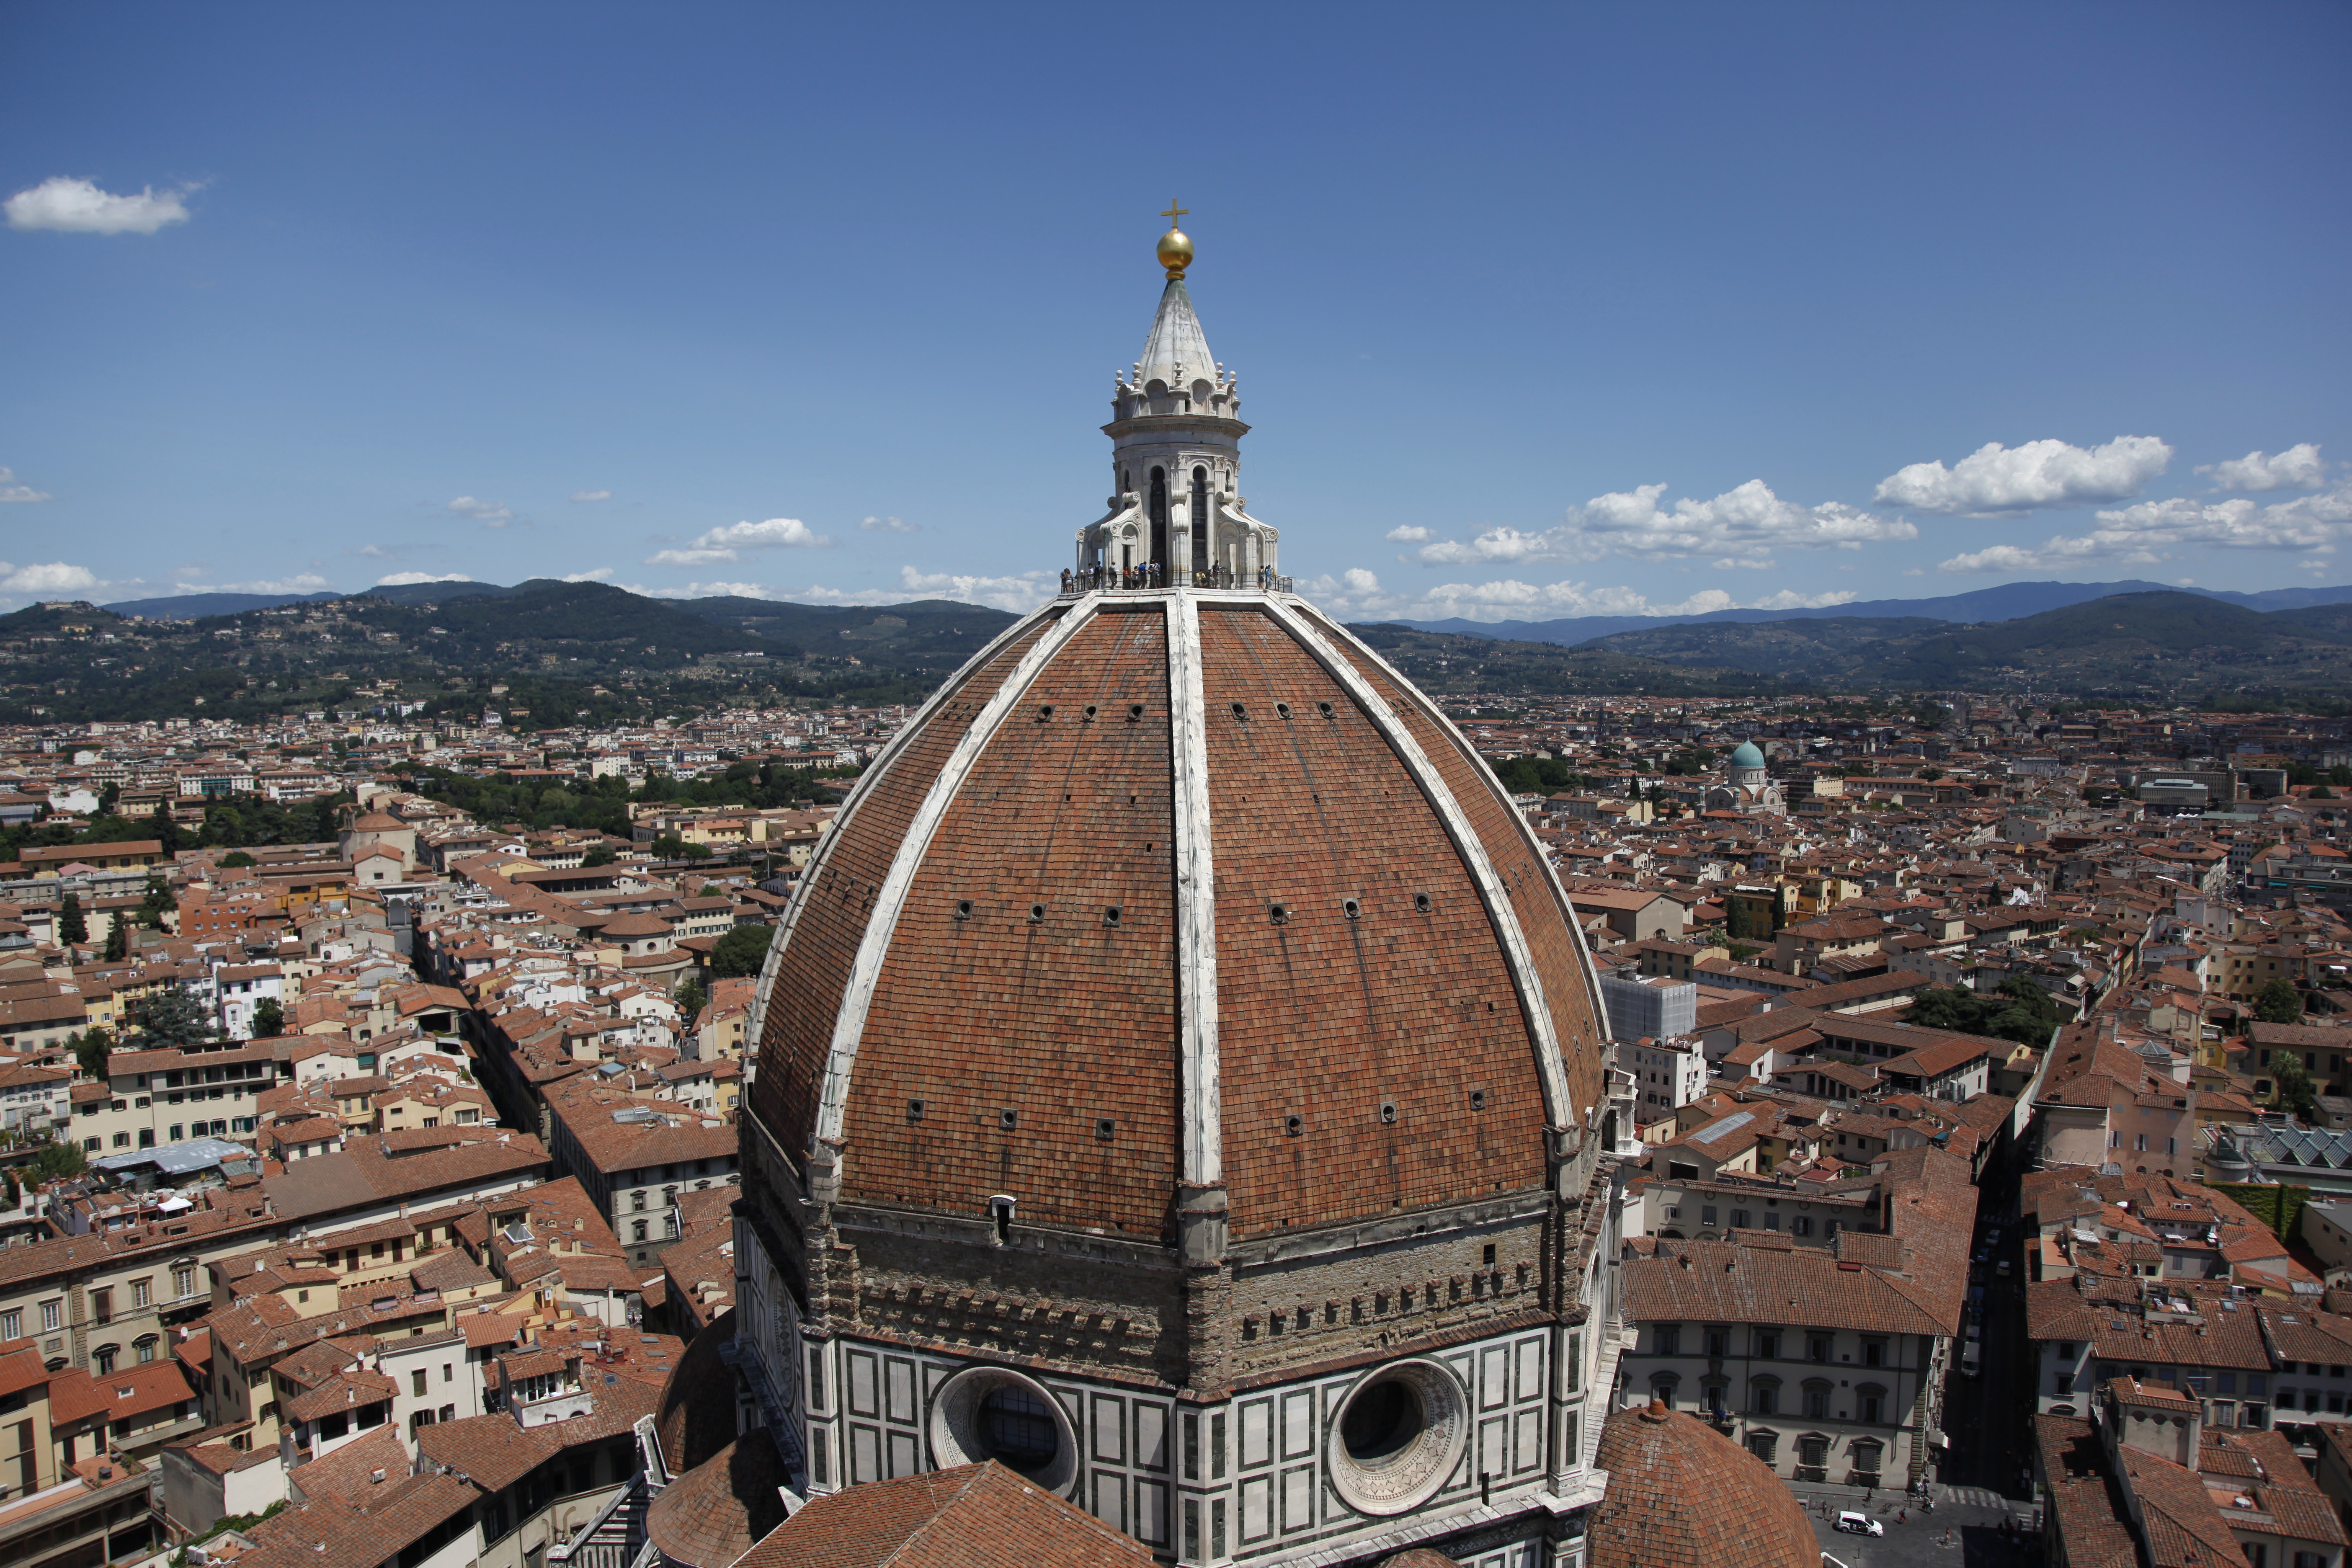 The dome of the Basilica di Santa Maria del Fiore is seen from Giotto's bell tower in Florence July 16, 2012. The cathedral complex, located in Pizza del Duomo, includes the bell tower and a Baptistery - all three buildings are part of the UNESCO World Heritage Site. REUTERS/Clarissa Cavalheiro (ITALY - Tags: TRAVEL RELIGION TPX IMAGES OF THE DAY) - GM1E8CE1S0N01